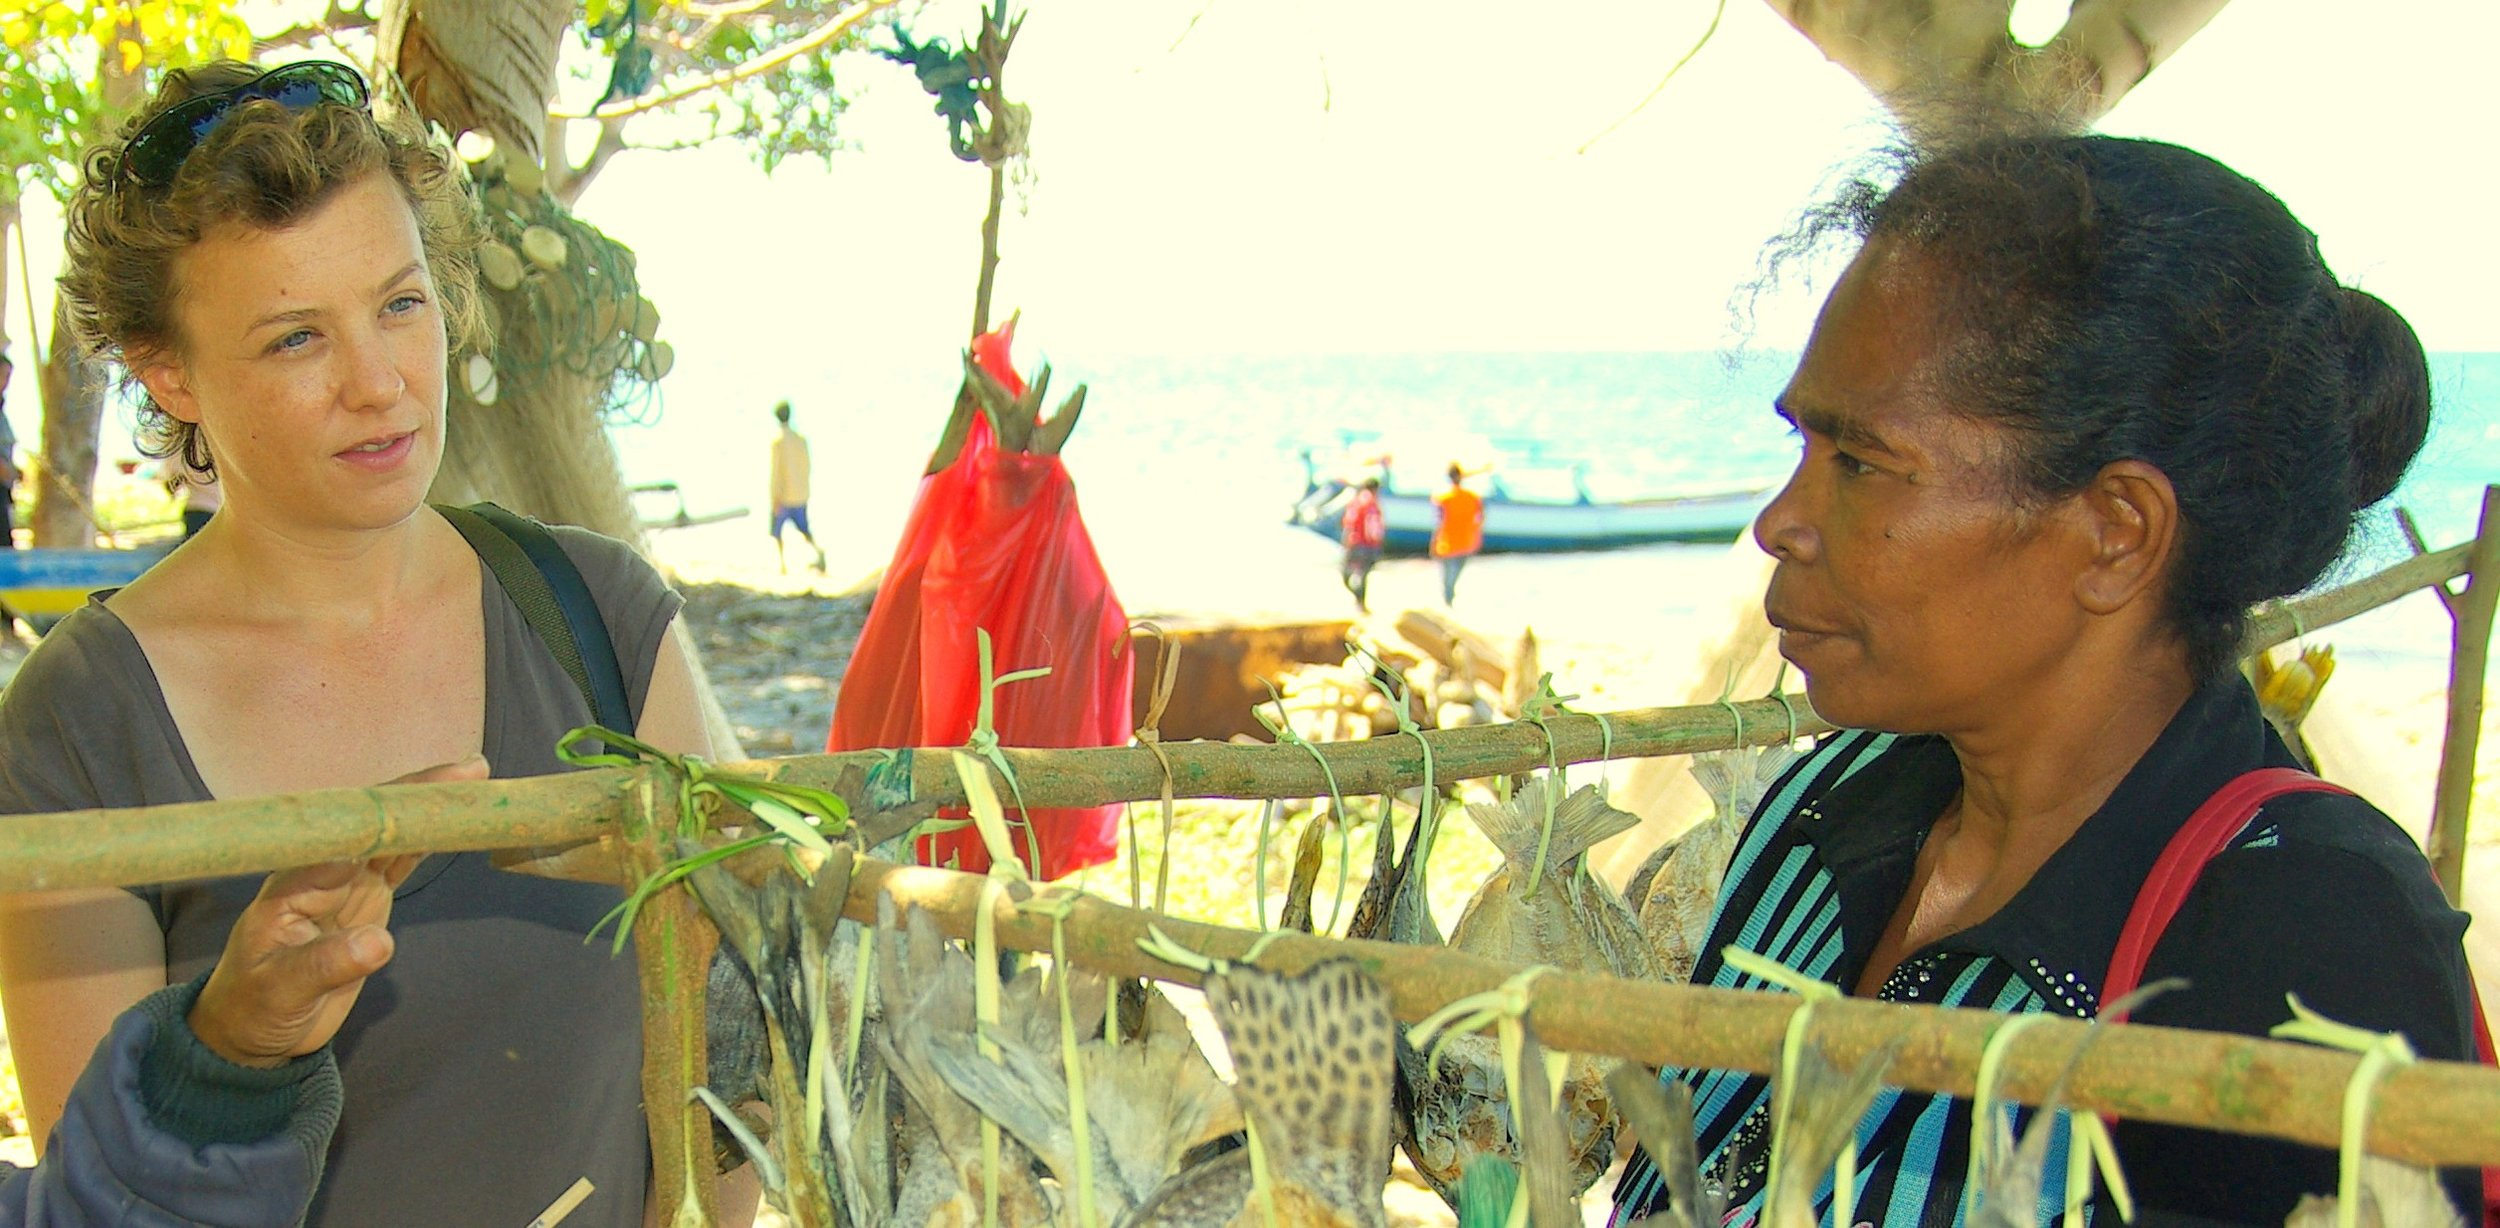 Kirsten on Ataúro Island, Timor-Leste, in 2012, pictured alongside a local woman selling dried fish. During her time at Timor-Leste, Kirsten worked with a research and development organisation called 'WorldFish' that aimed to better understand the role of women in fisheries and their participation in governance systems, image supplied.